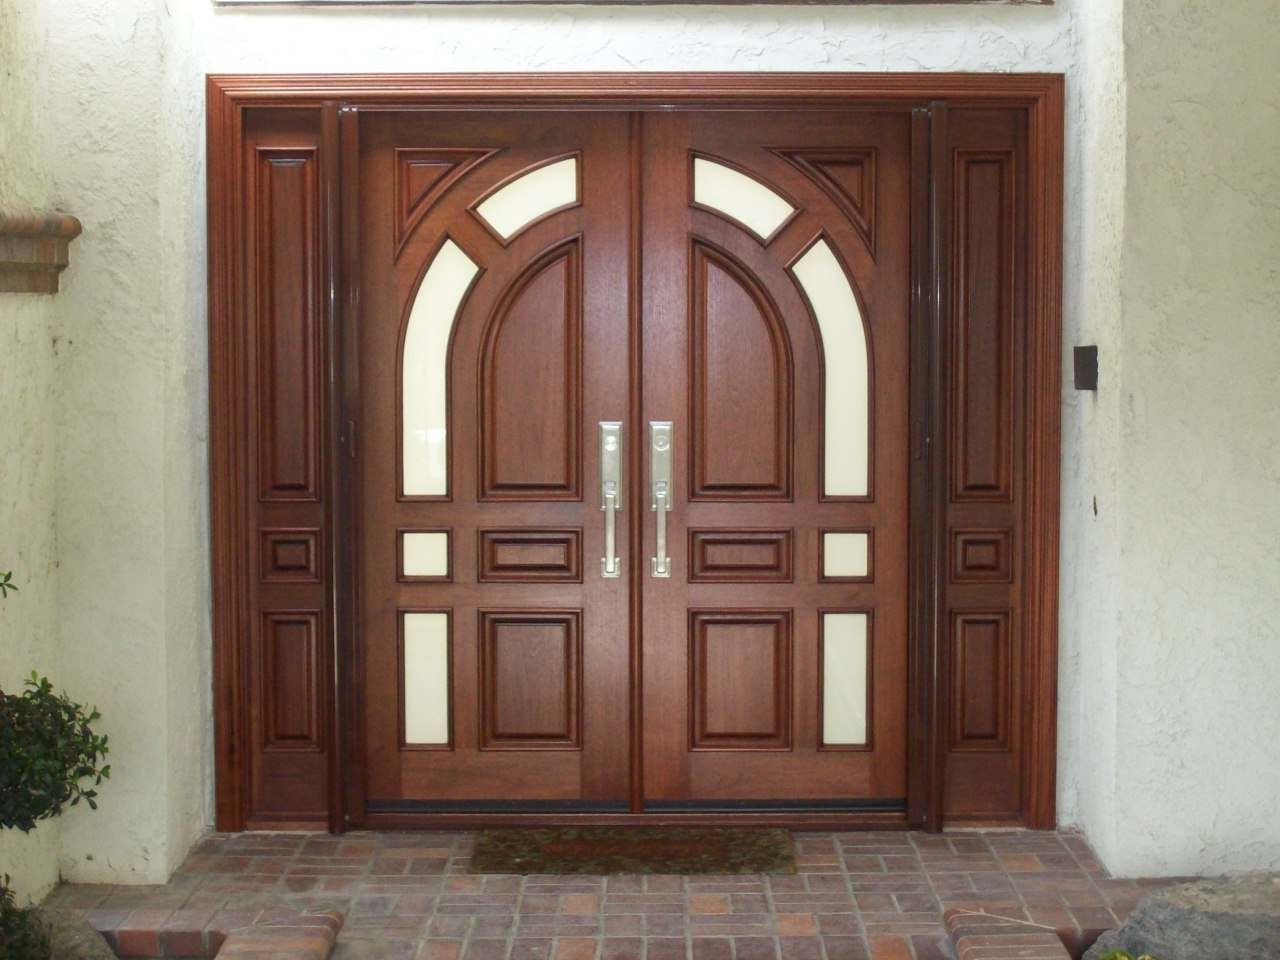 creative inspiration door designs for houses. Your house place could be very modern  if you choose the smartest and entrance door Creative Front Door Designs That Will Inspire You Double For Houses http